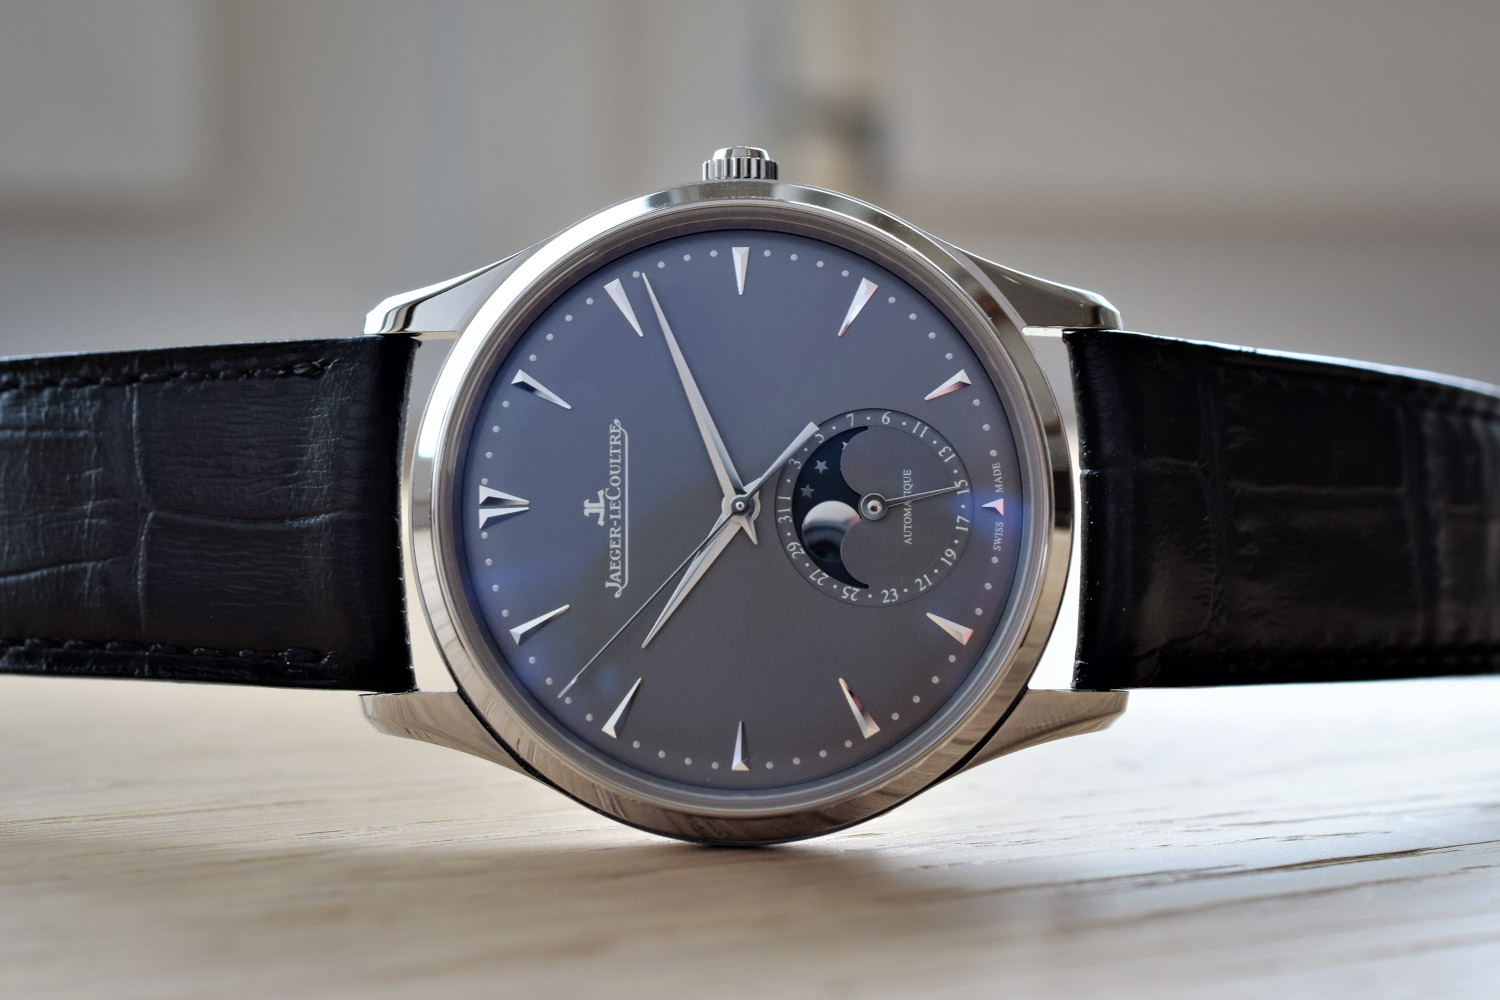 Jaeger-LeCoultre Master Ultra-Thin With Blue and Grey Dials For 2017